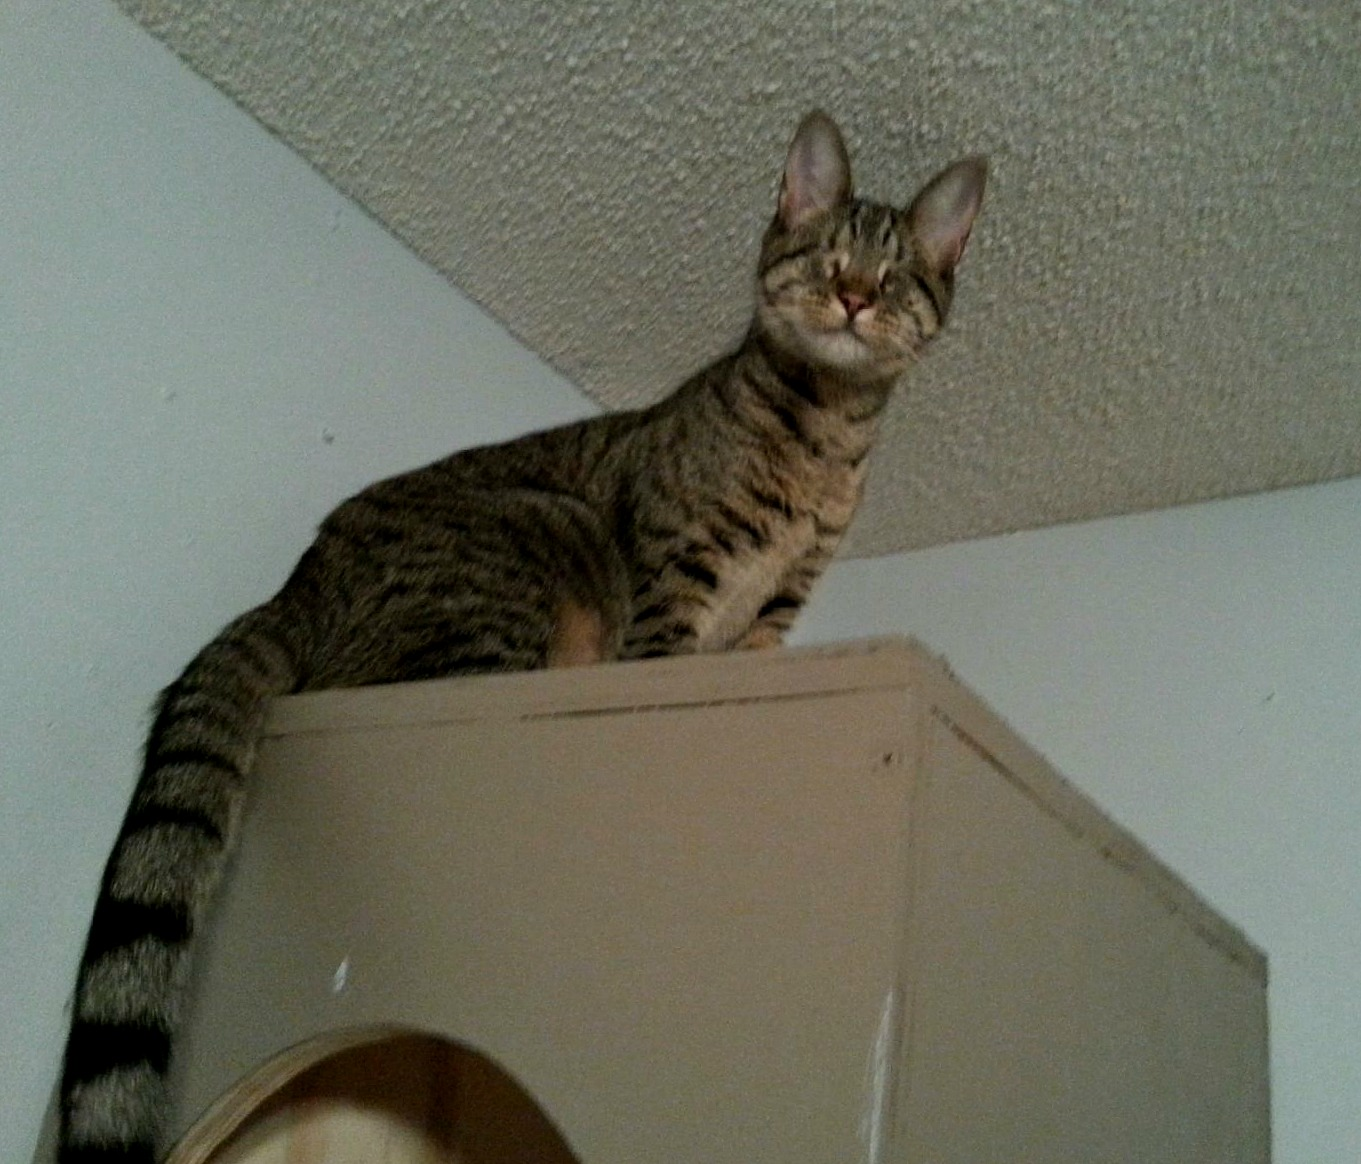 Pebbles the Blind Cat Up High